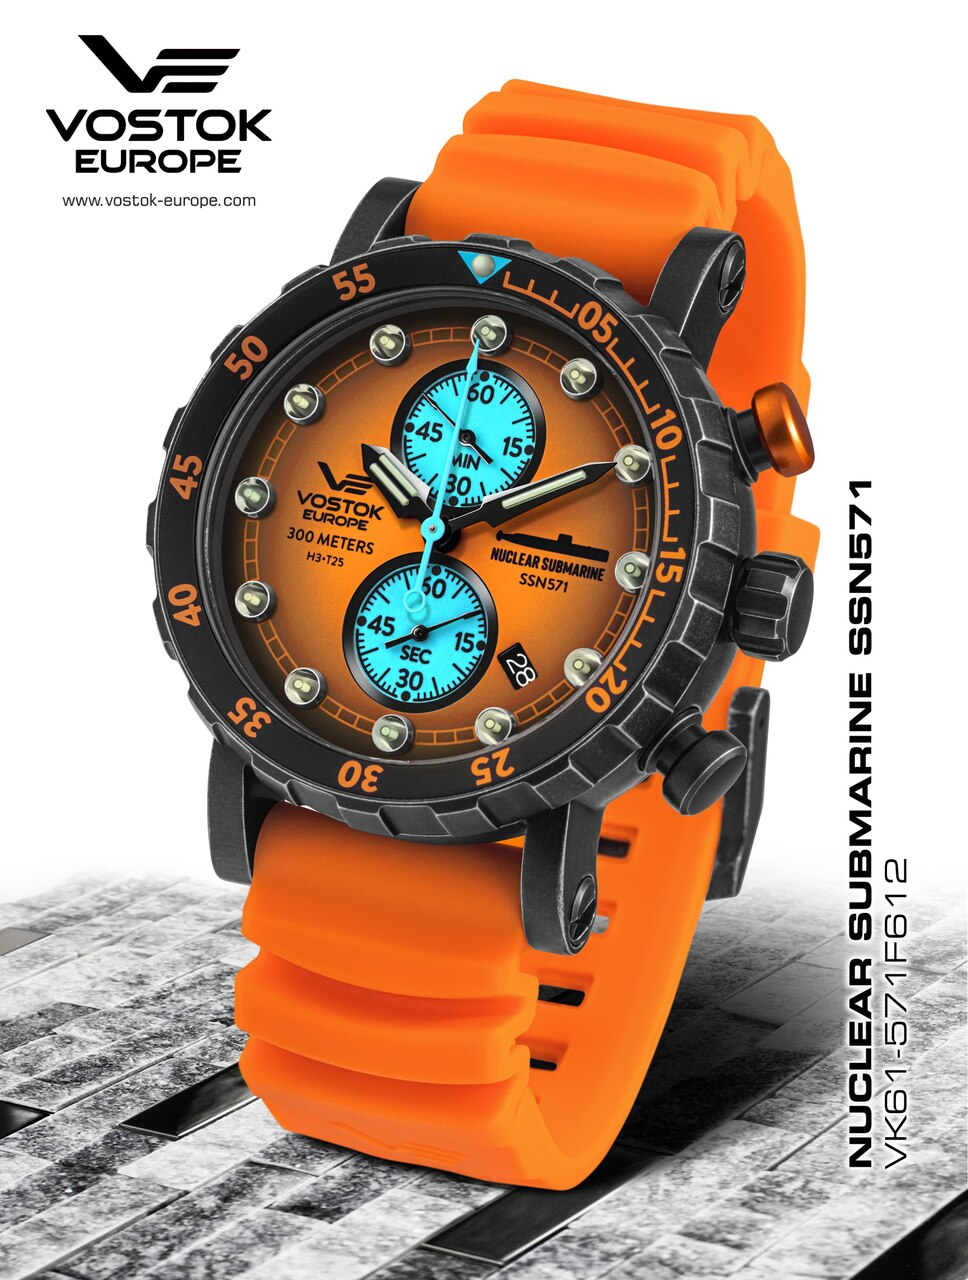 Vostok-Europe SSN-571 Mecha-Quartz Chronograph Submarine Watch Giveaway Giveaway Image